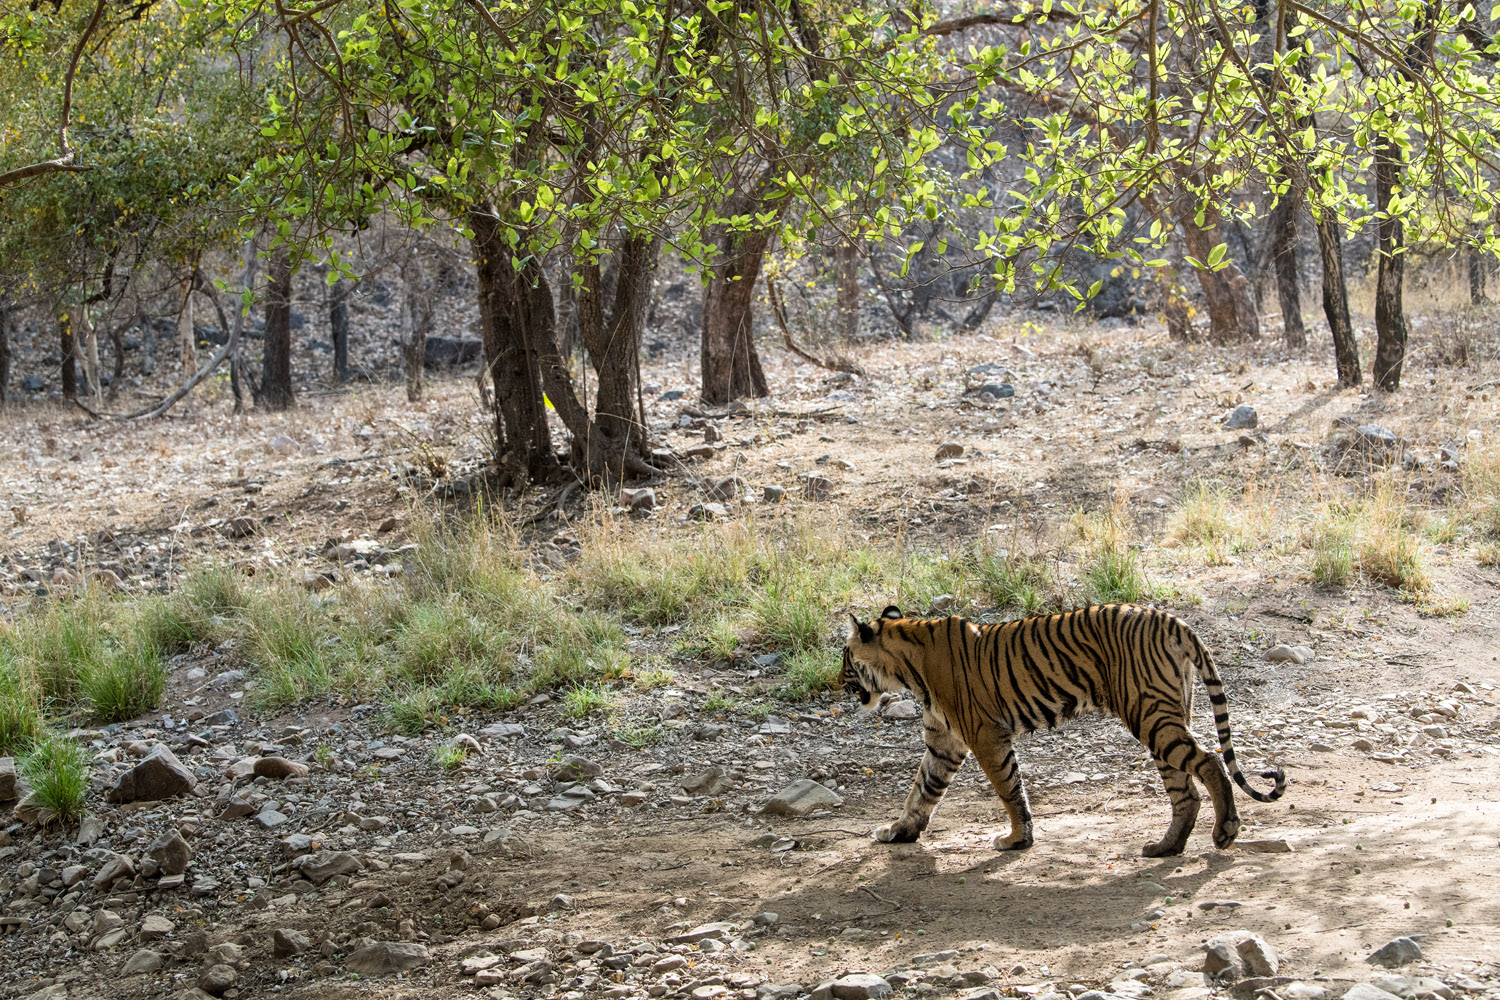 Bengal tigress walking through forest, Ranthambhore National Park, Rajasthan, India